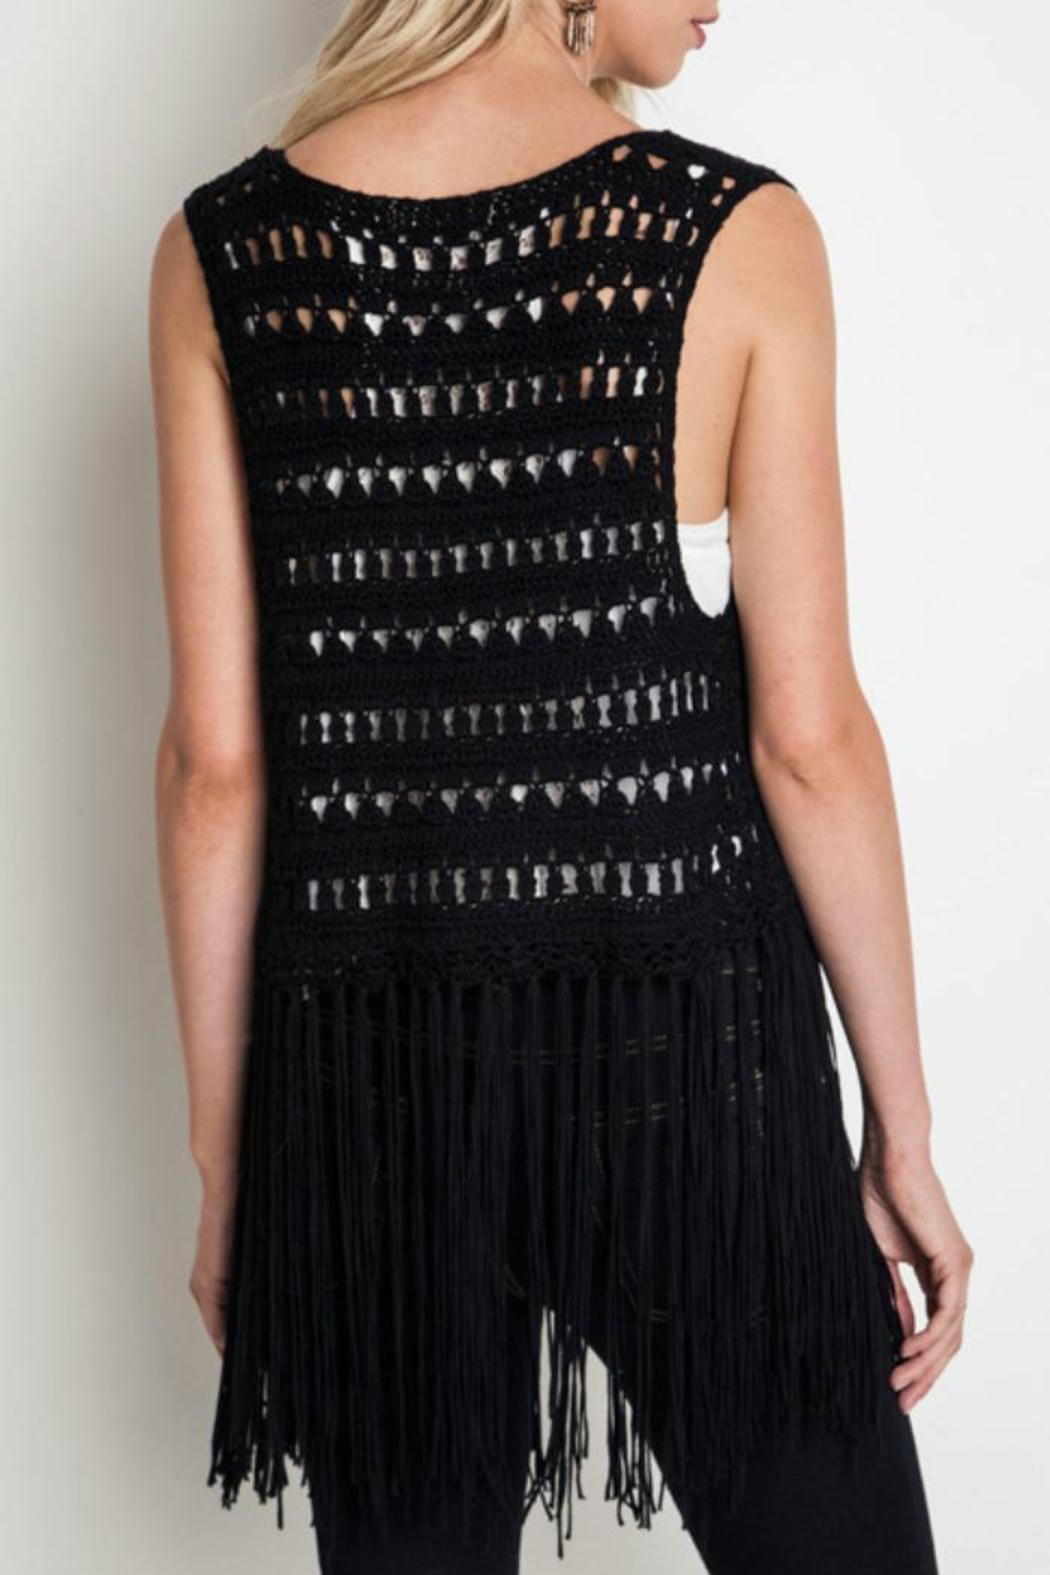 Umgee USA Fringe Vest from Mississippi by Exit 16 - Diamondhead ...